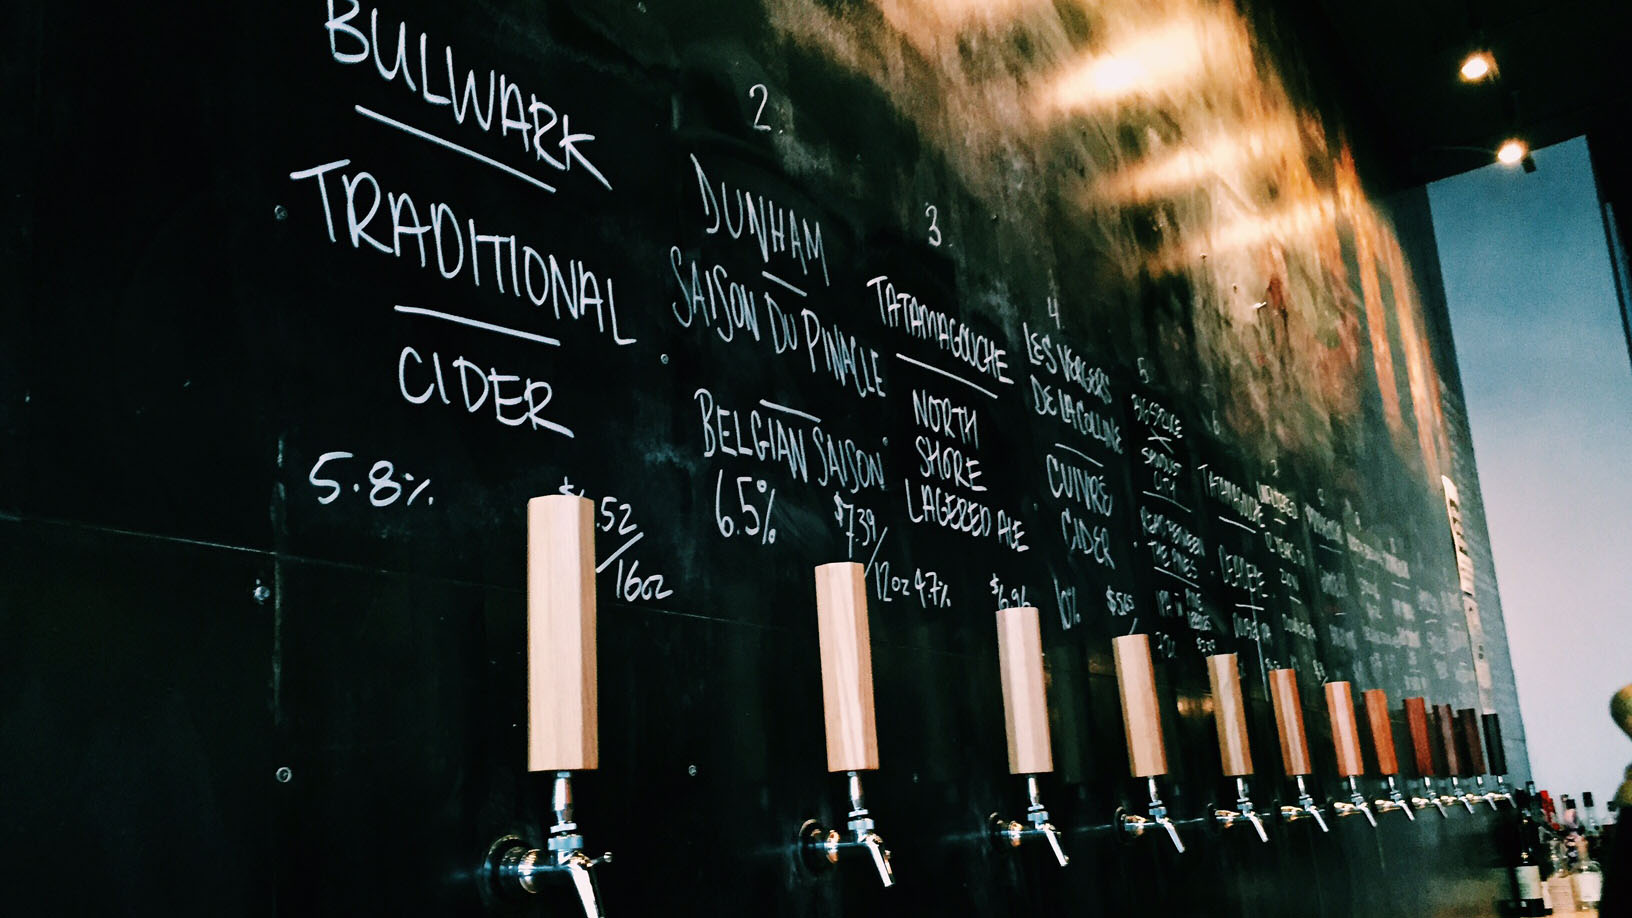 Selection of local beer at Stillwell in downtown Halifax